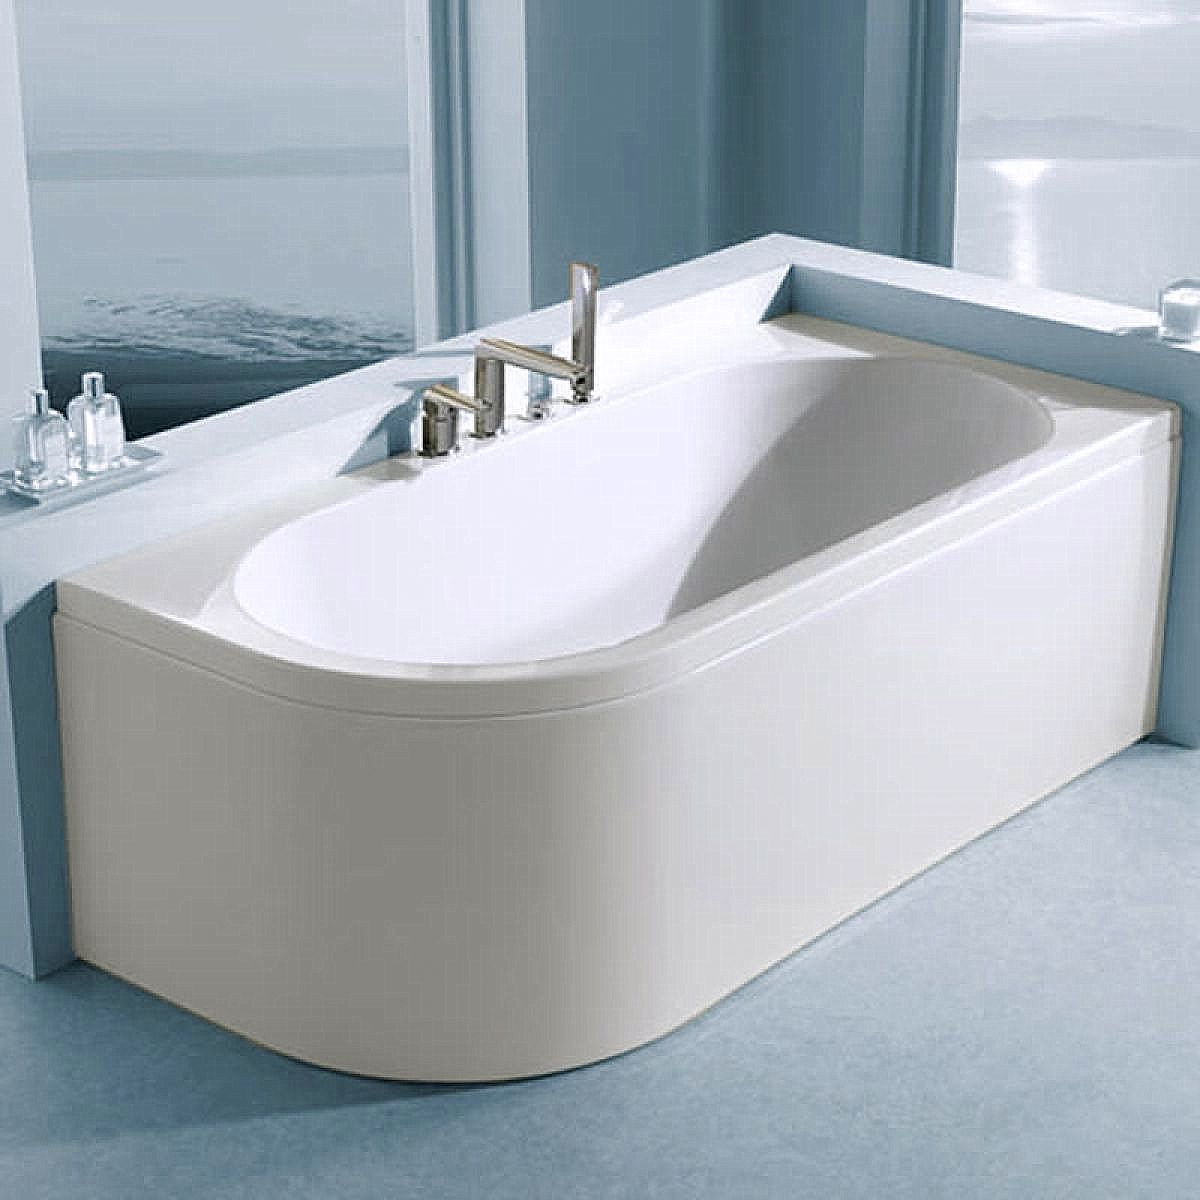 1600 P Shaped Shower Bath Carron Status Duo Offset Curved Bath Uk Bathrooms